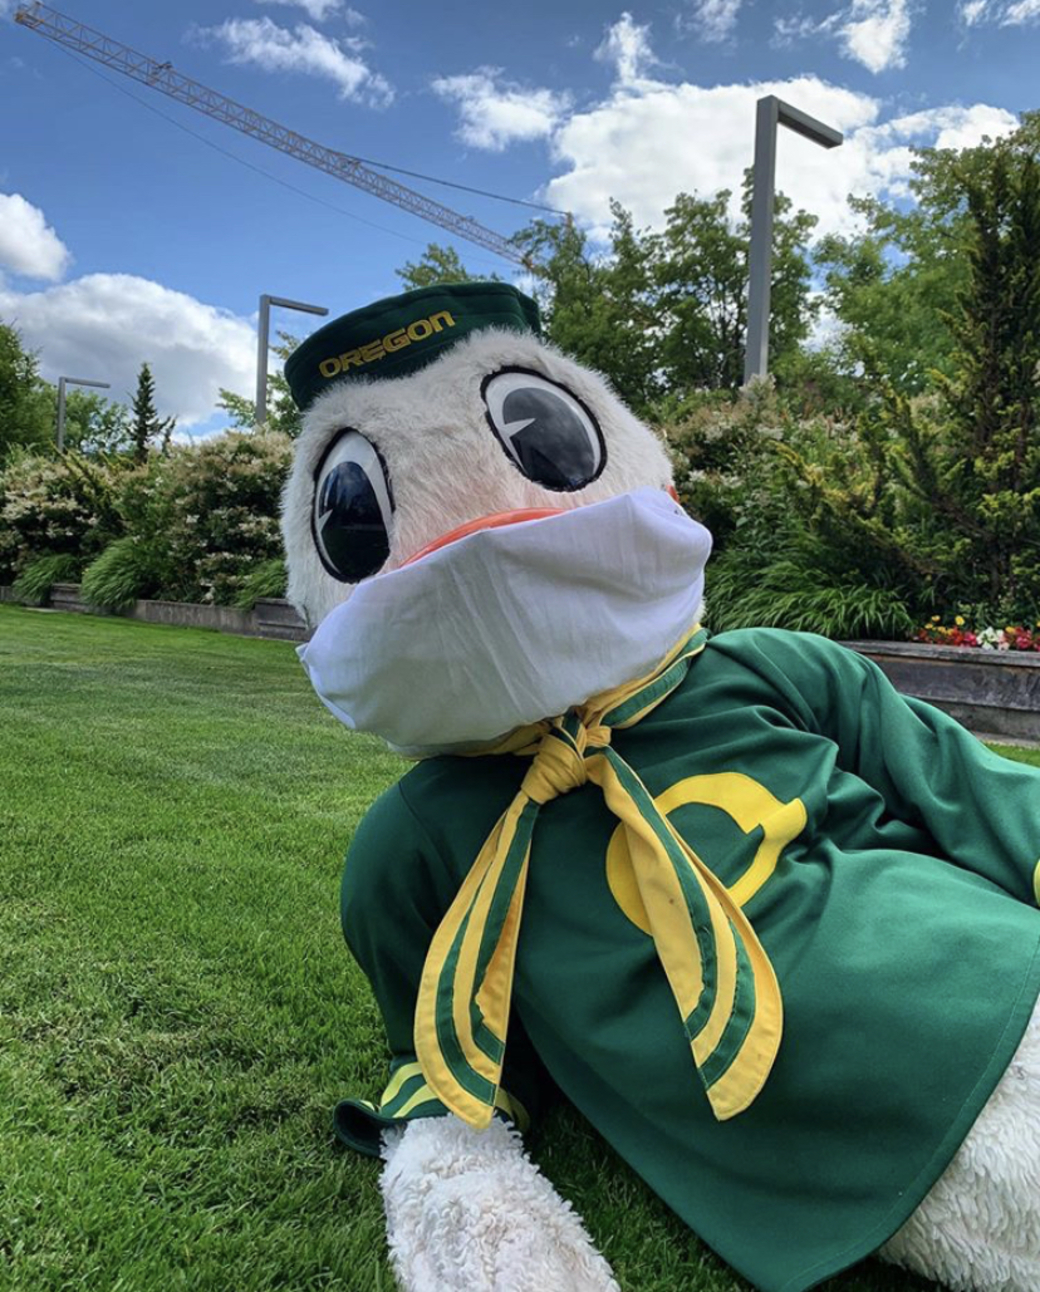 The Duck wears a face covering while relaxing outside.